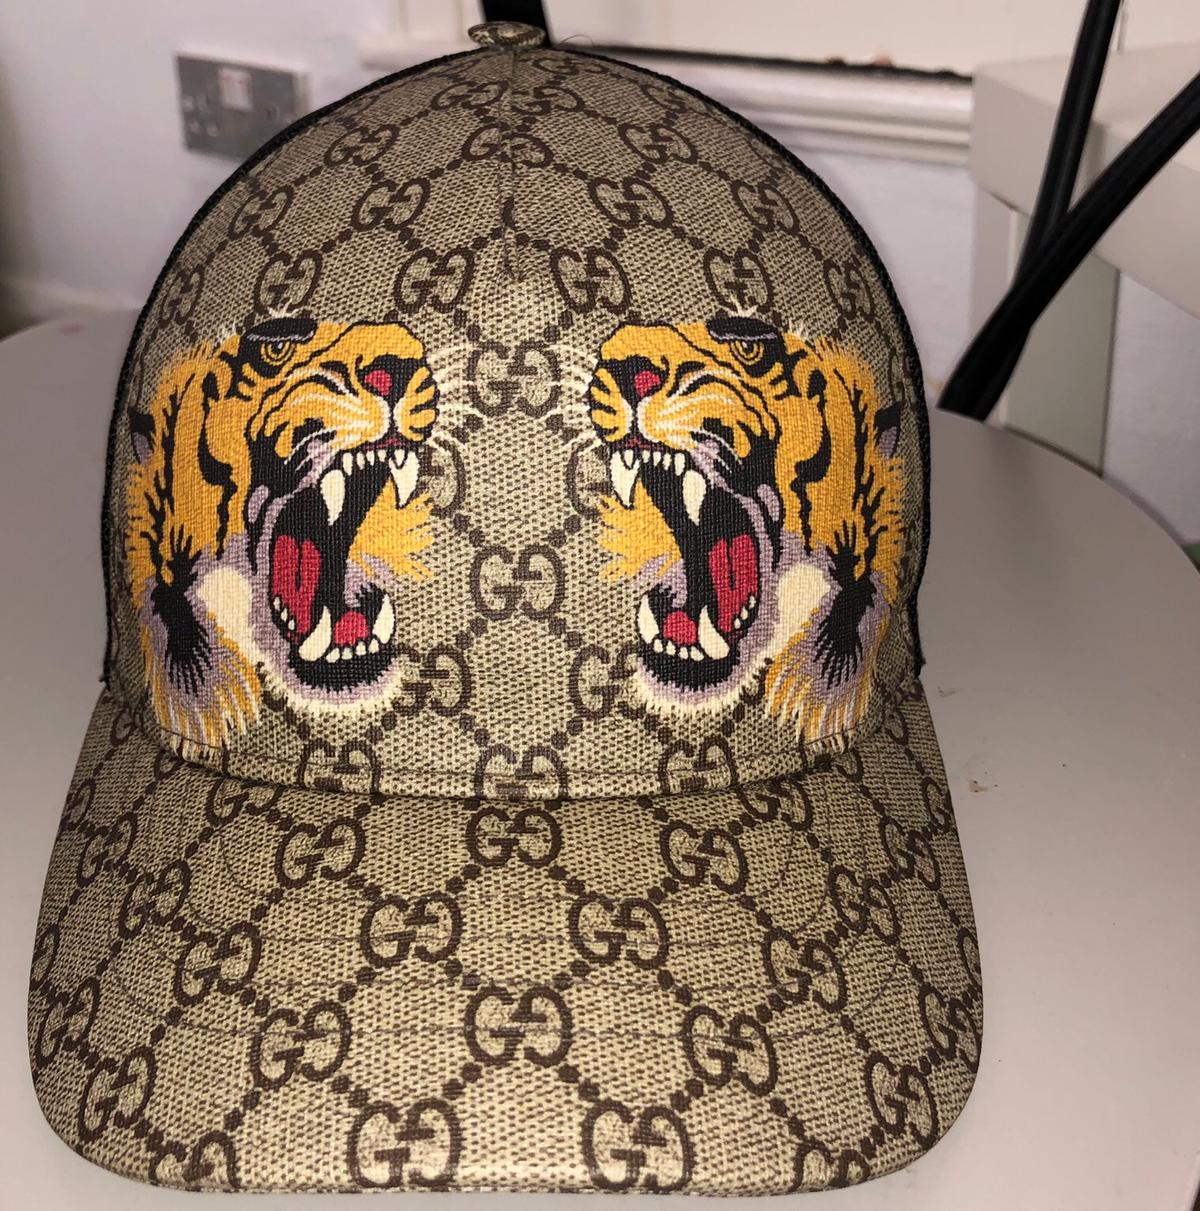 fab9d9dde33ea5 Gucci hat in OL9 Oldham for £150.00 for sale - Shpock